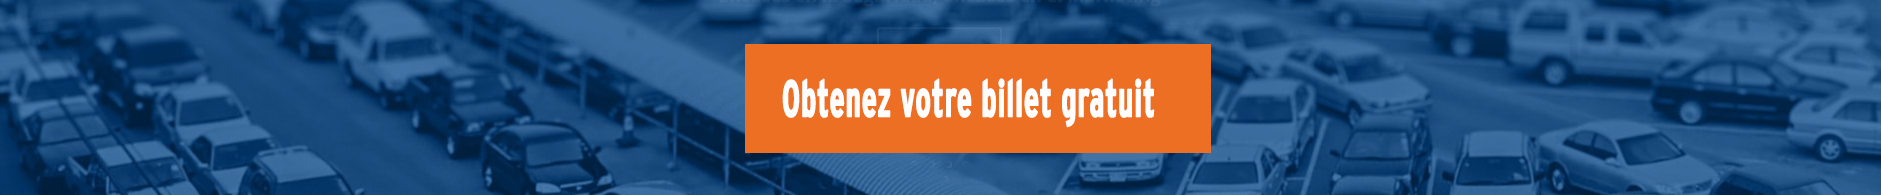 Billet gratuit pour le plus important salon # Intertraffic 2018 Amsterdam | Innova Systems Group